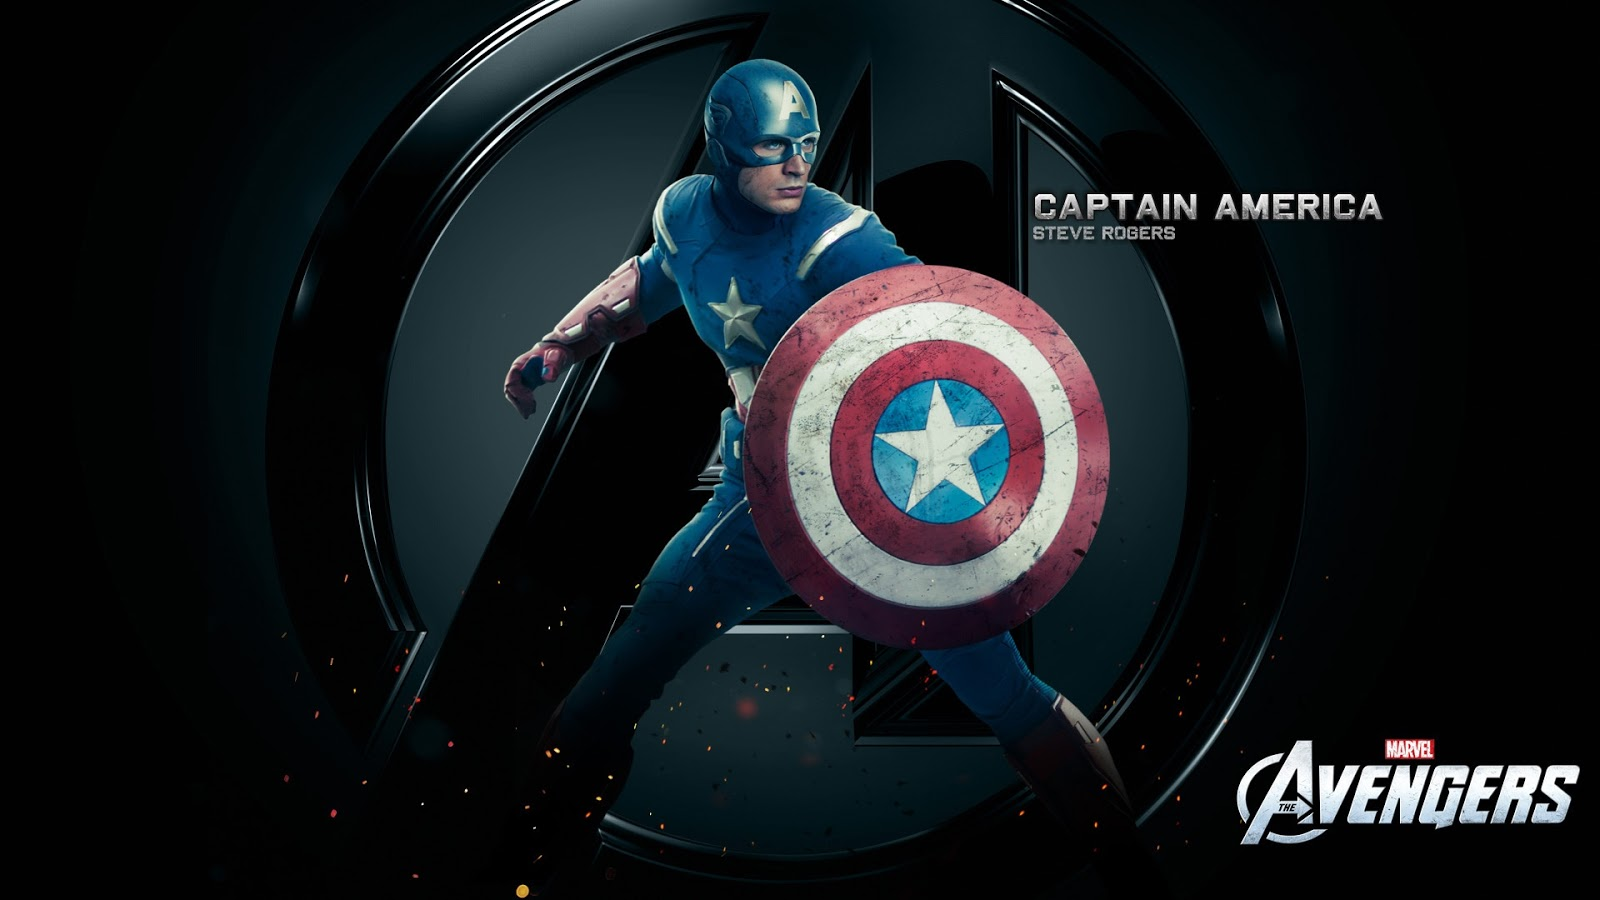 Captain America Chris Evans in Movie Avengers Wallpaper HD